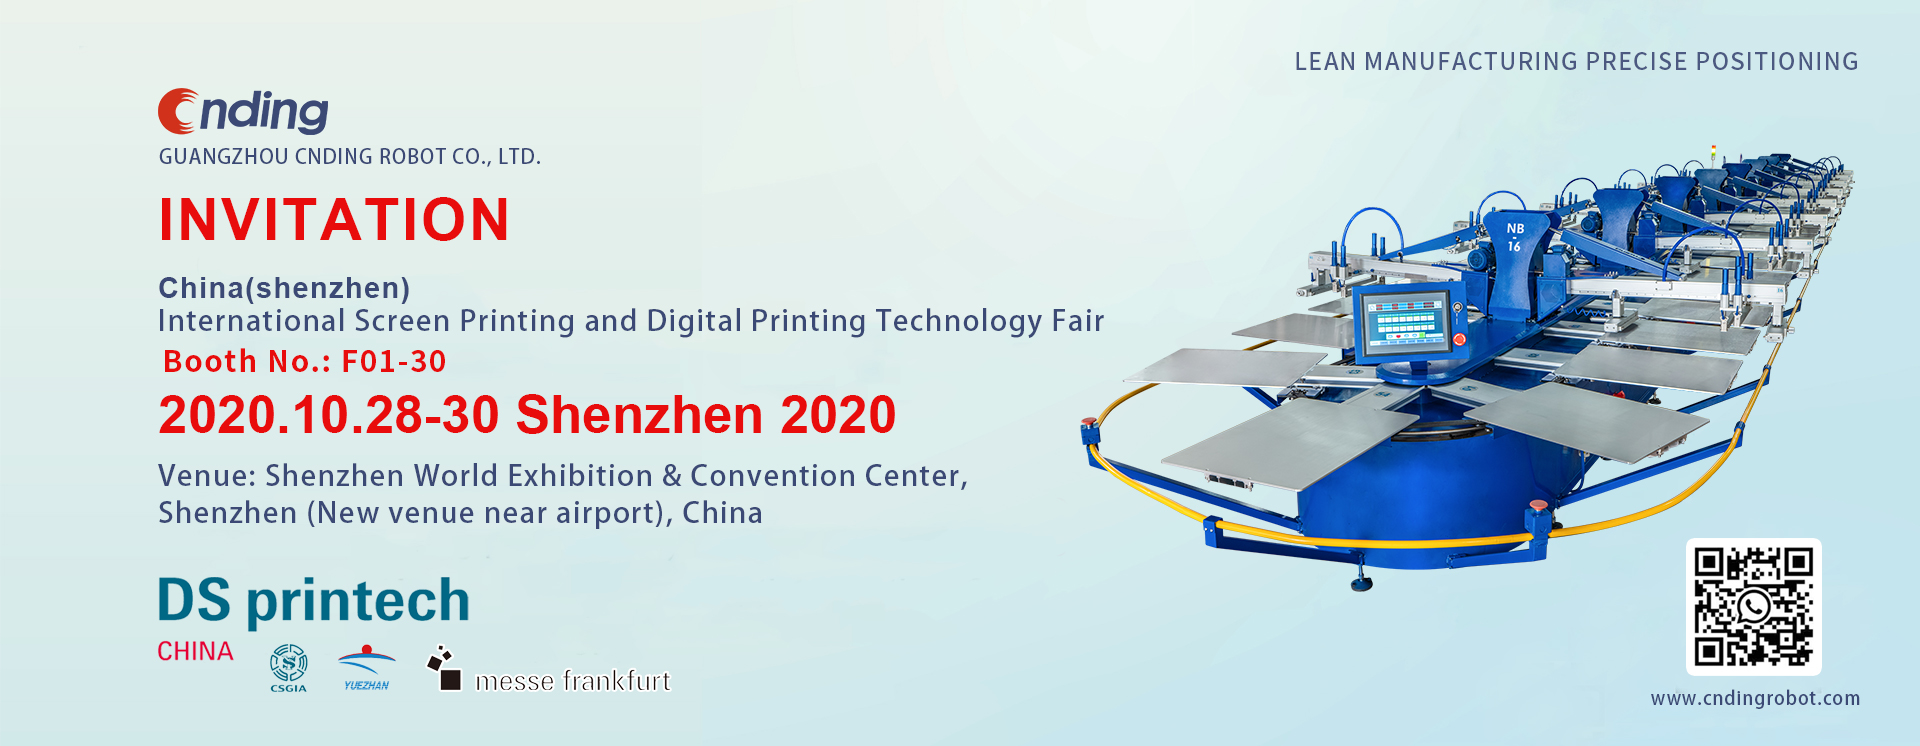 Invitation of DS Printech exhibition